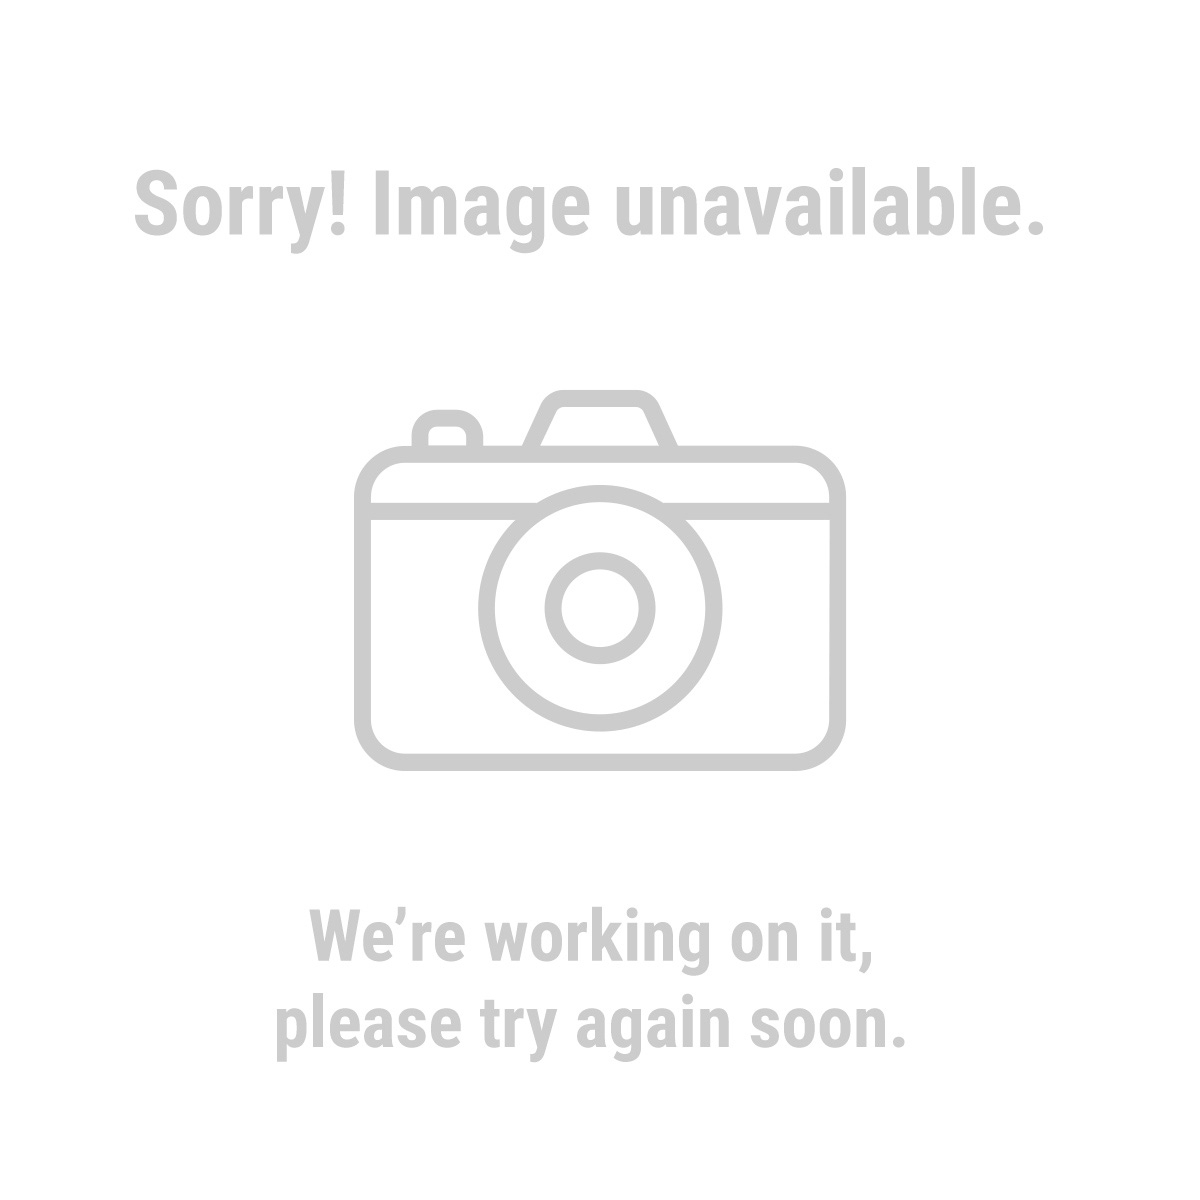 11 Piece SAE Quick Change Nut Drivers